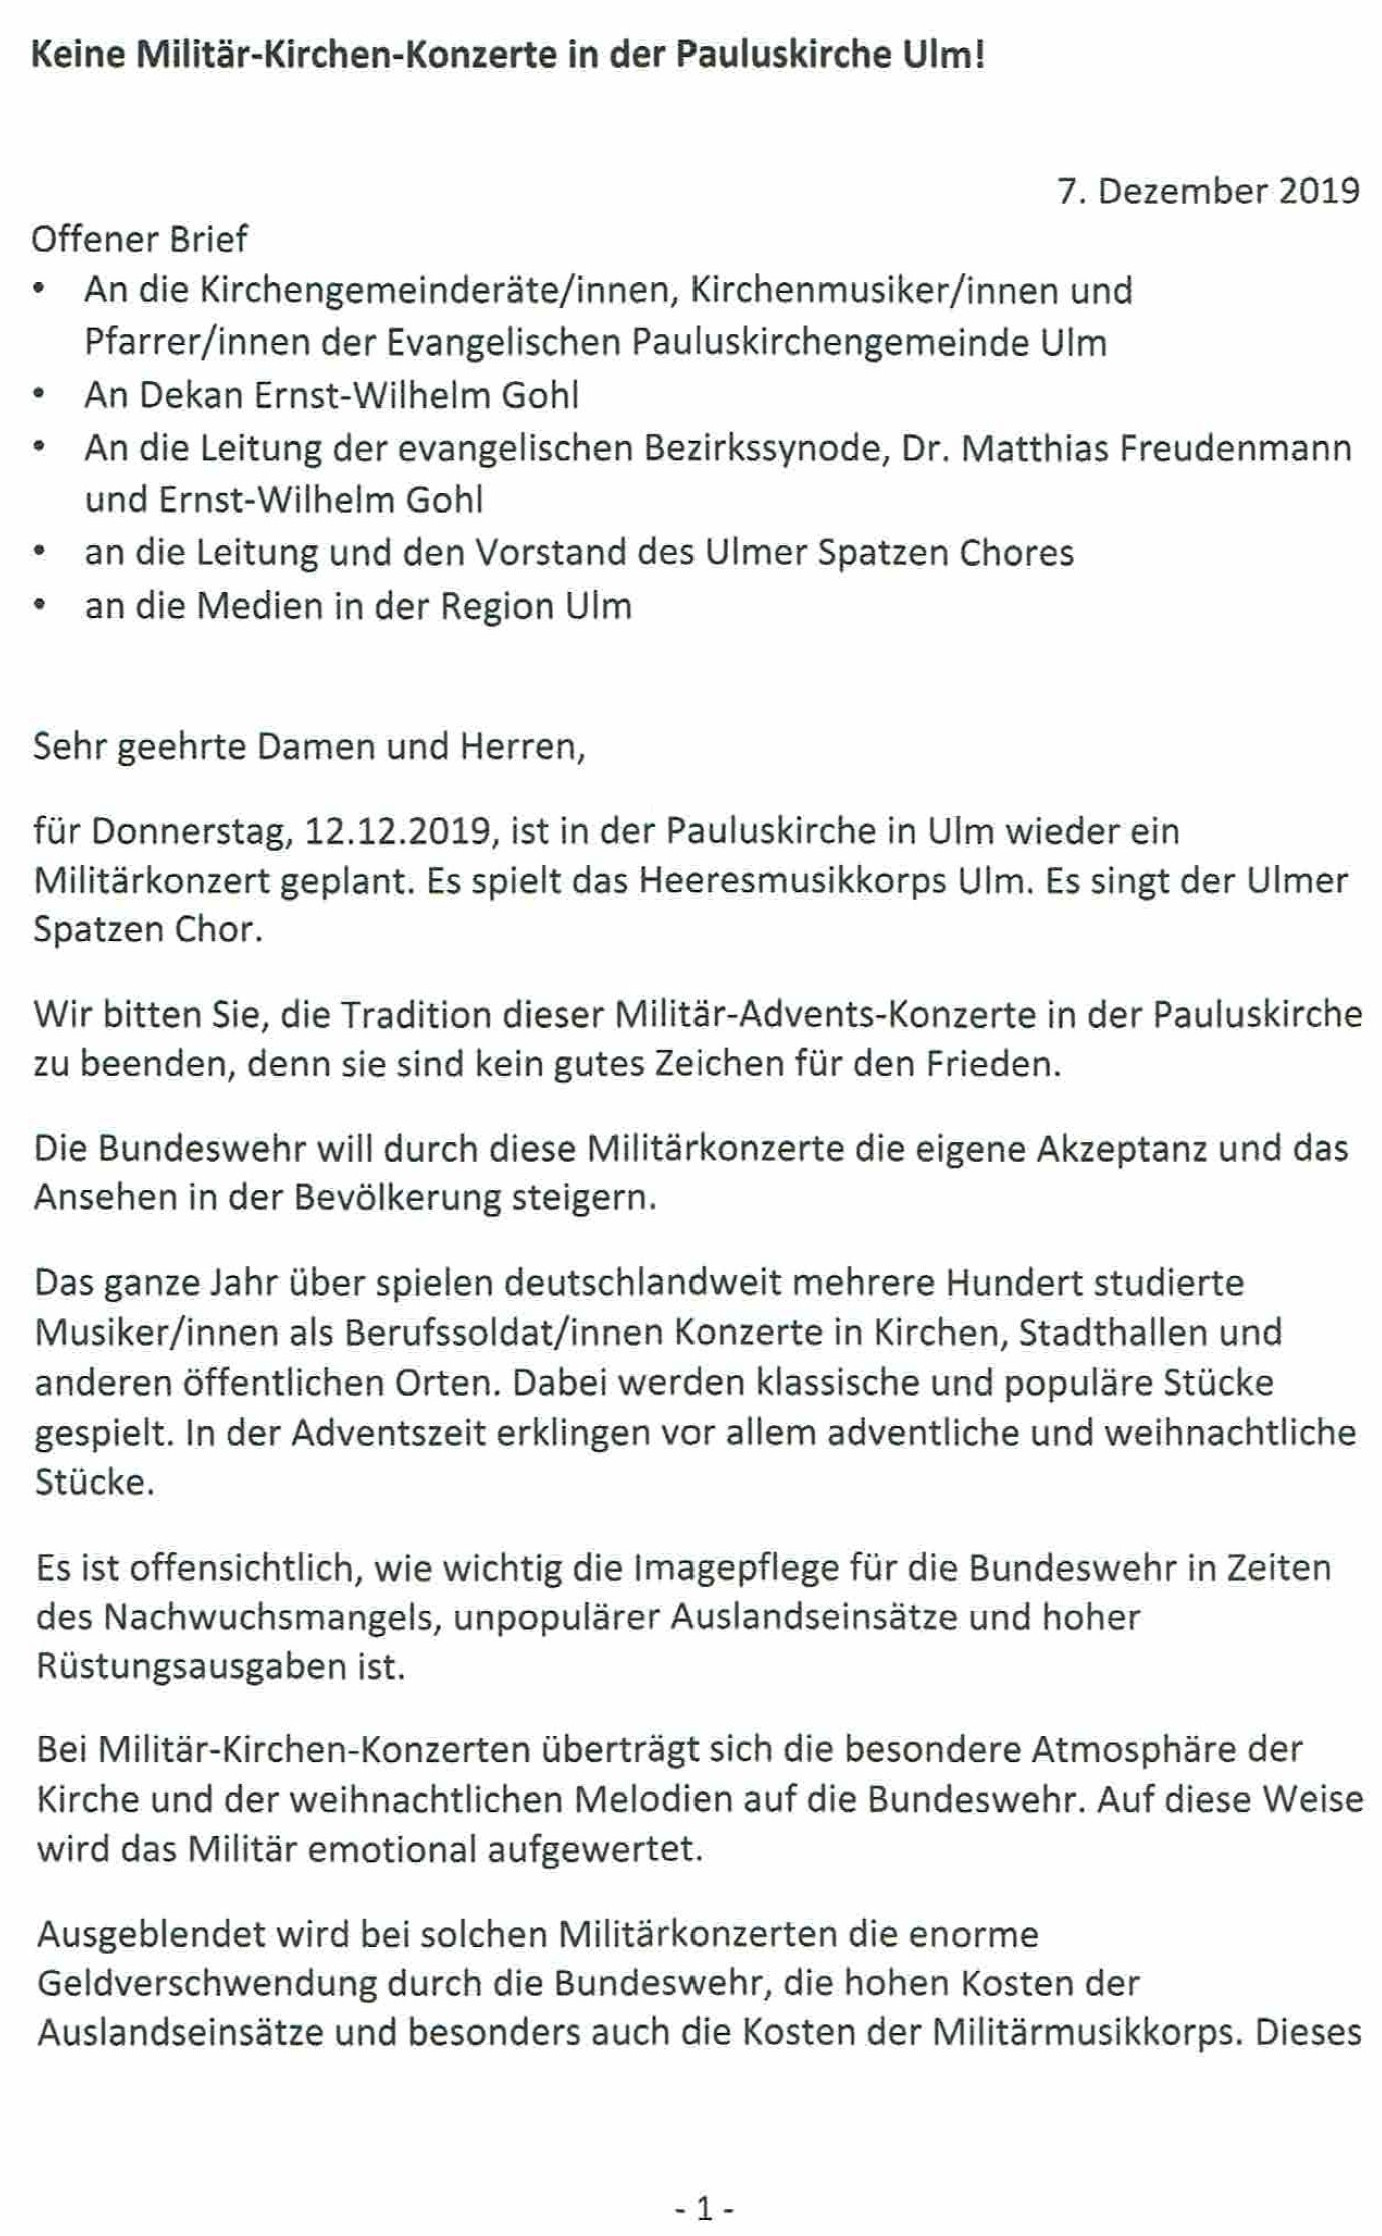 20191208_offener_brief_a.jpg